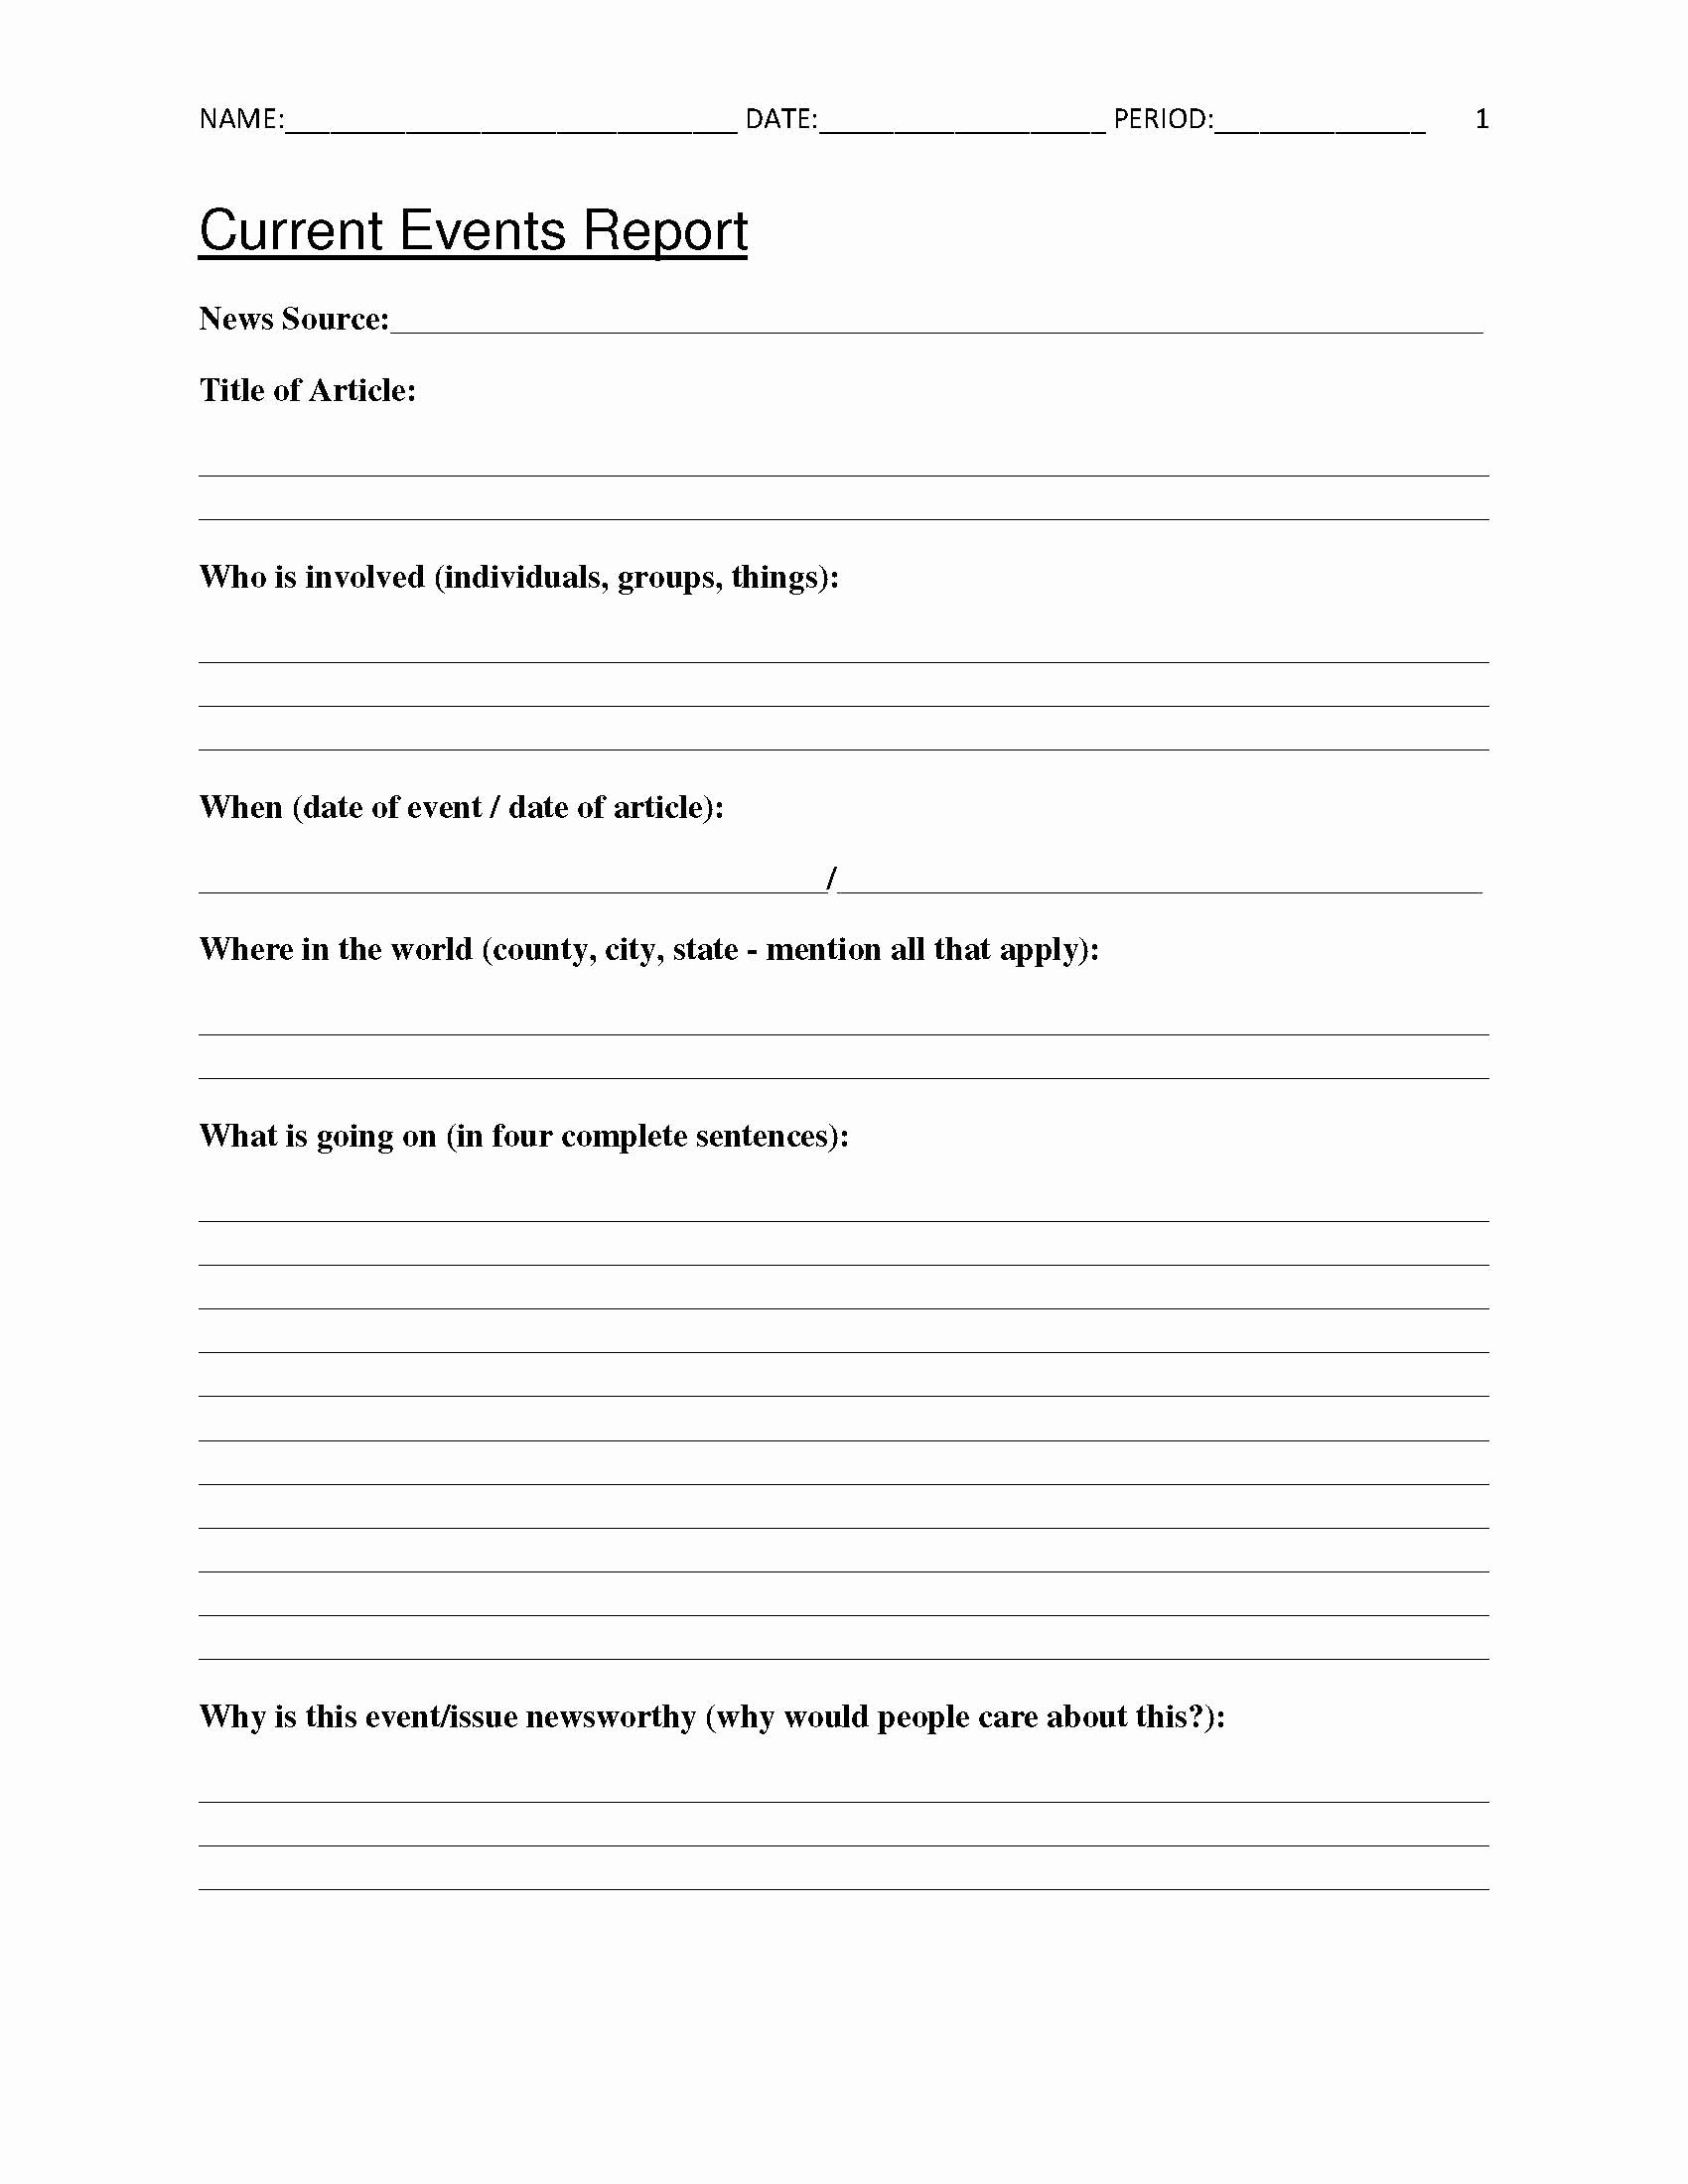 Current events Worksheet Middle School Ideas Free Current events Report Worksheet for Classroom Teachers